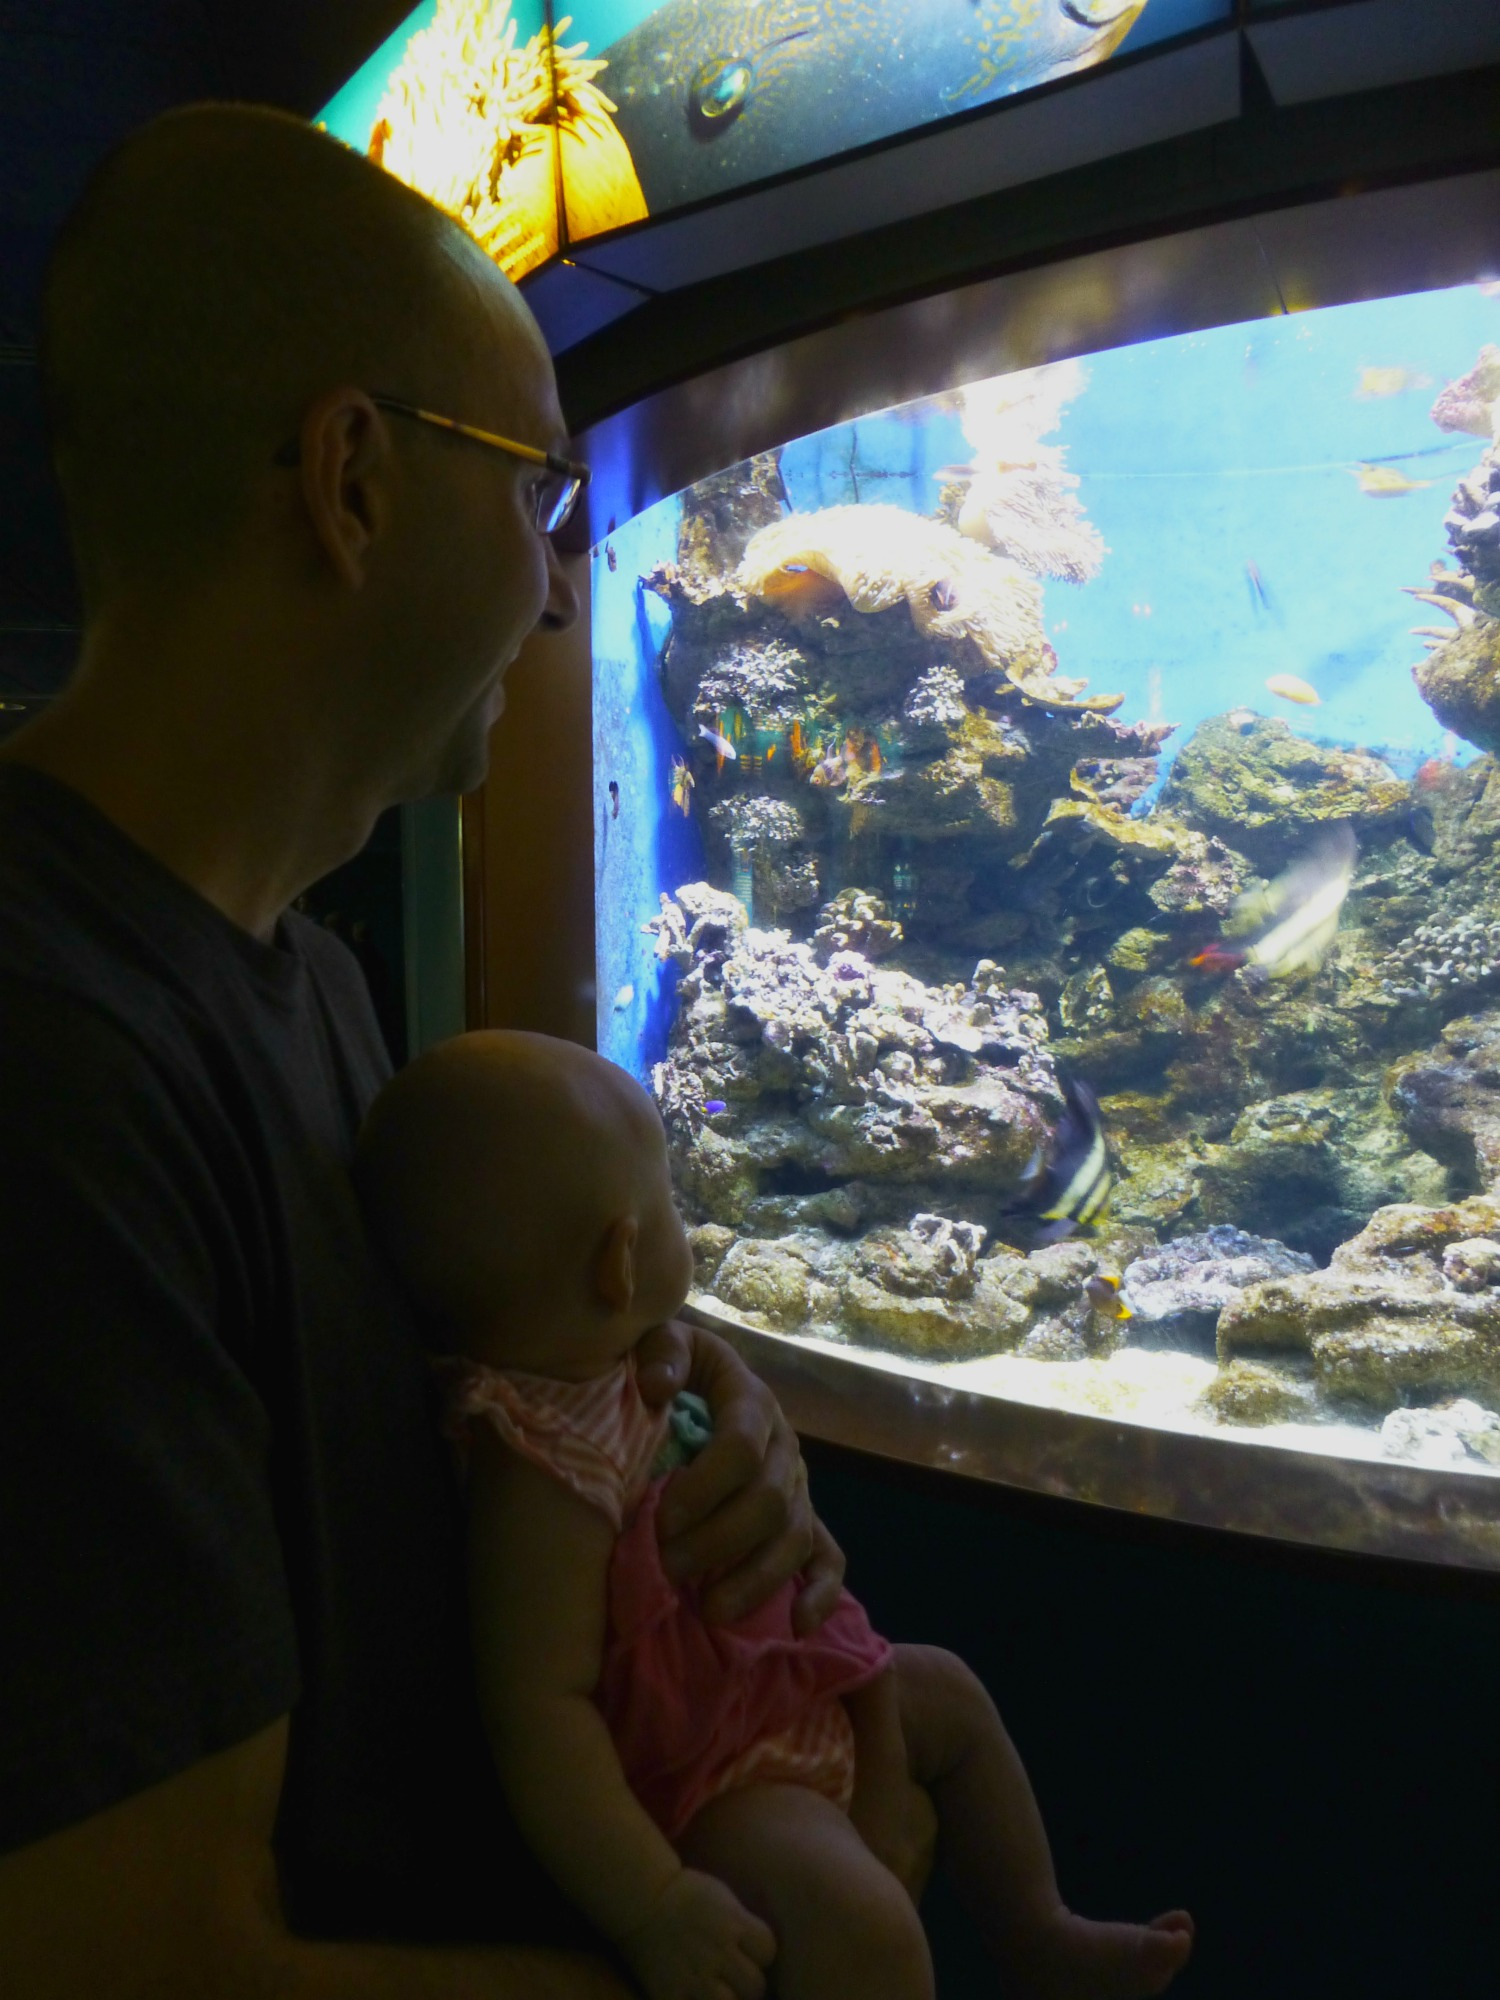 Barcelona aquarium with a baby